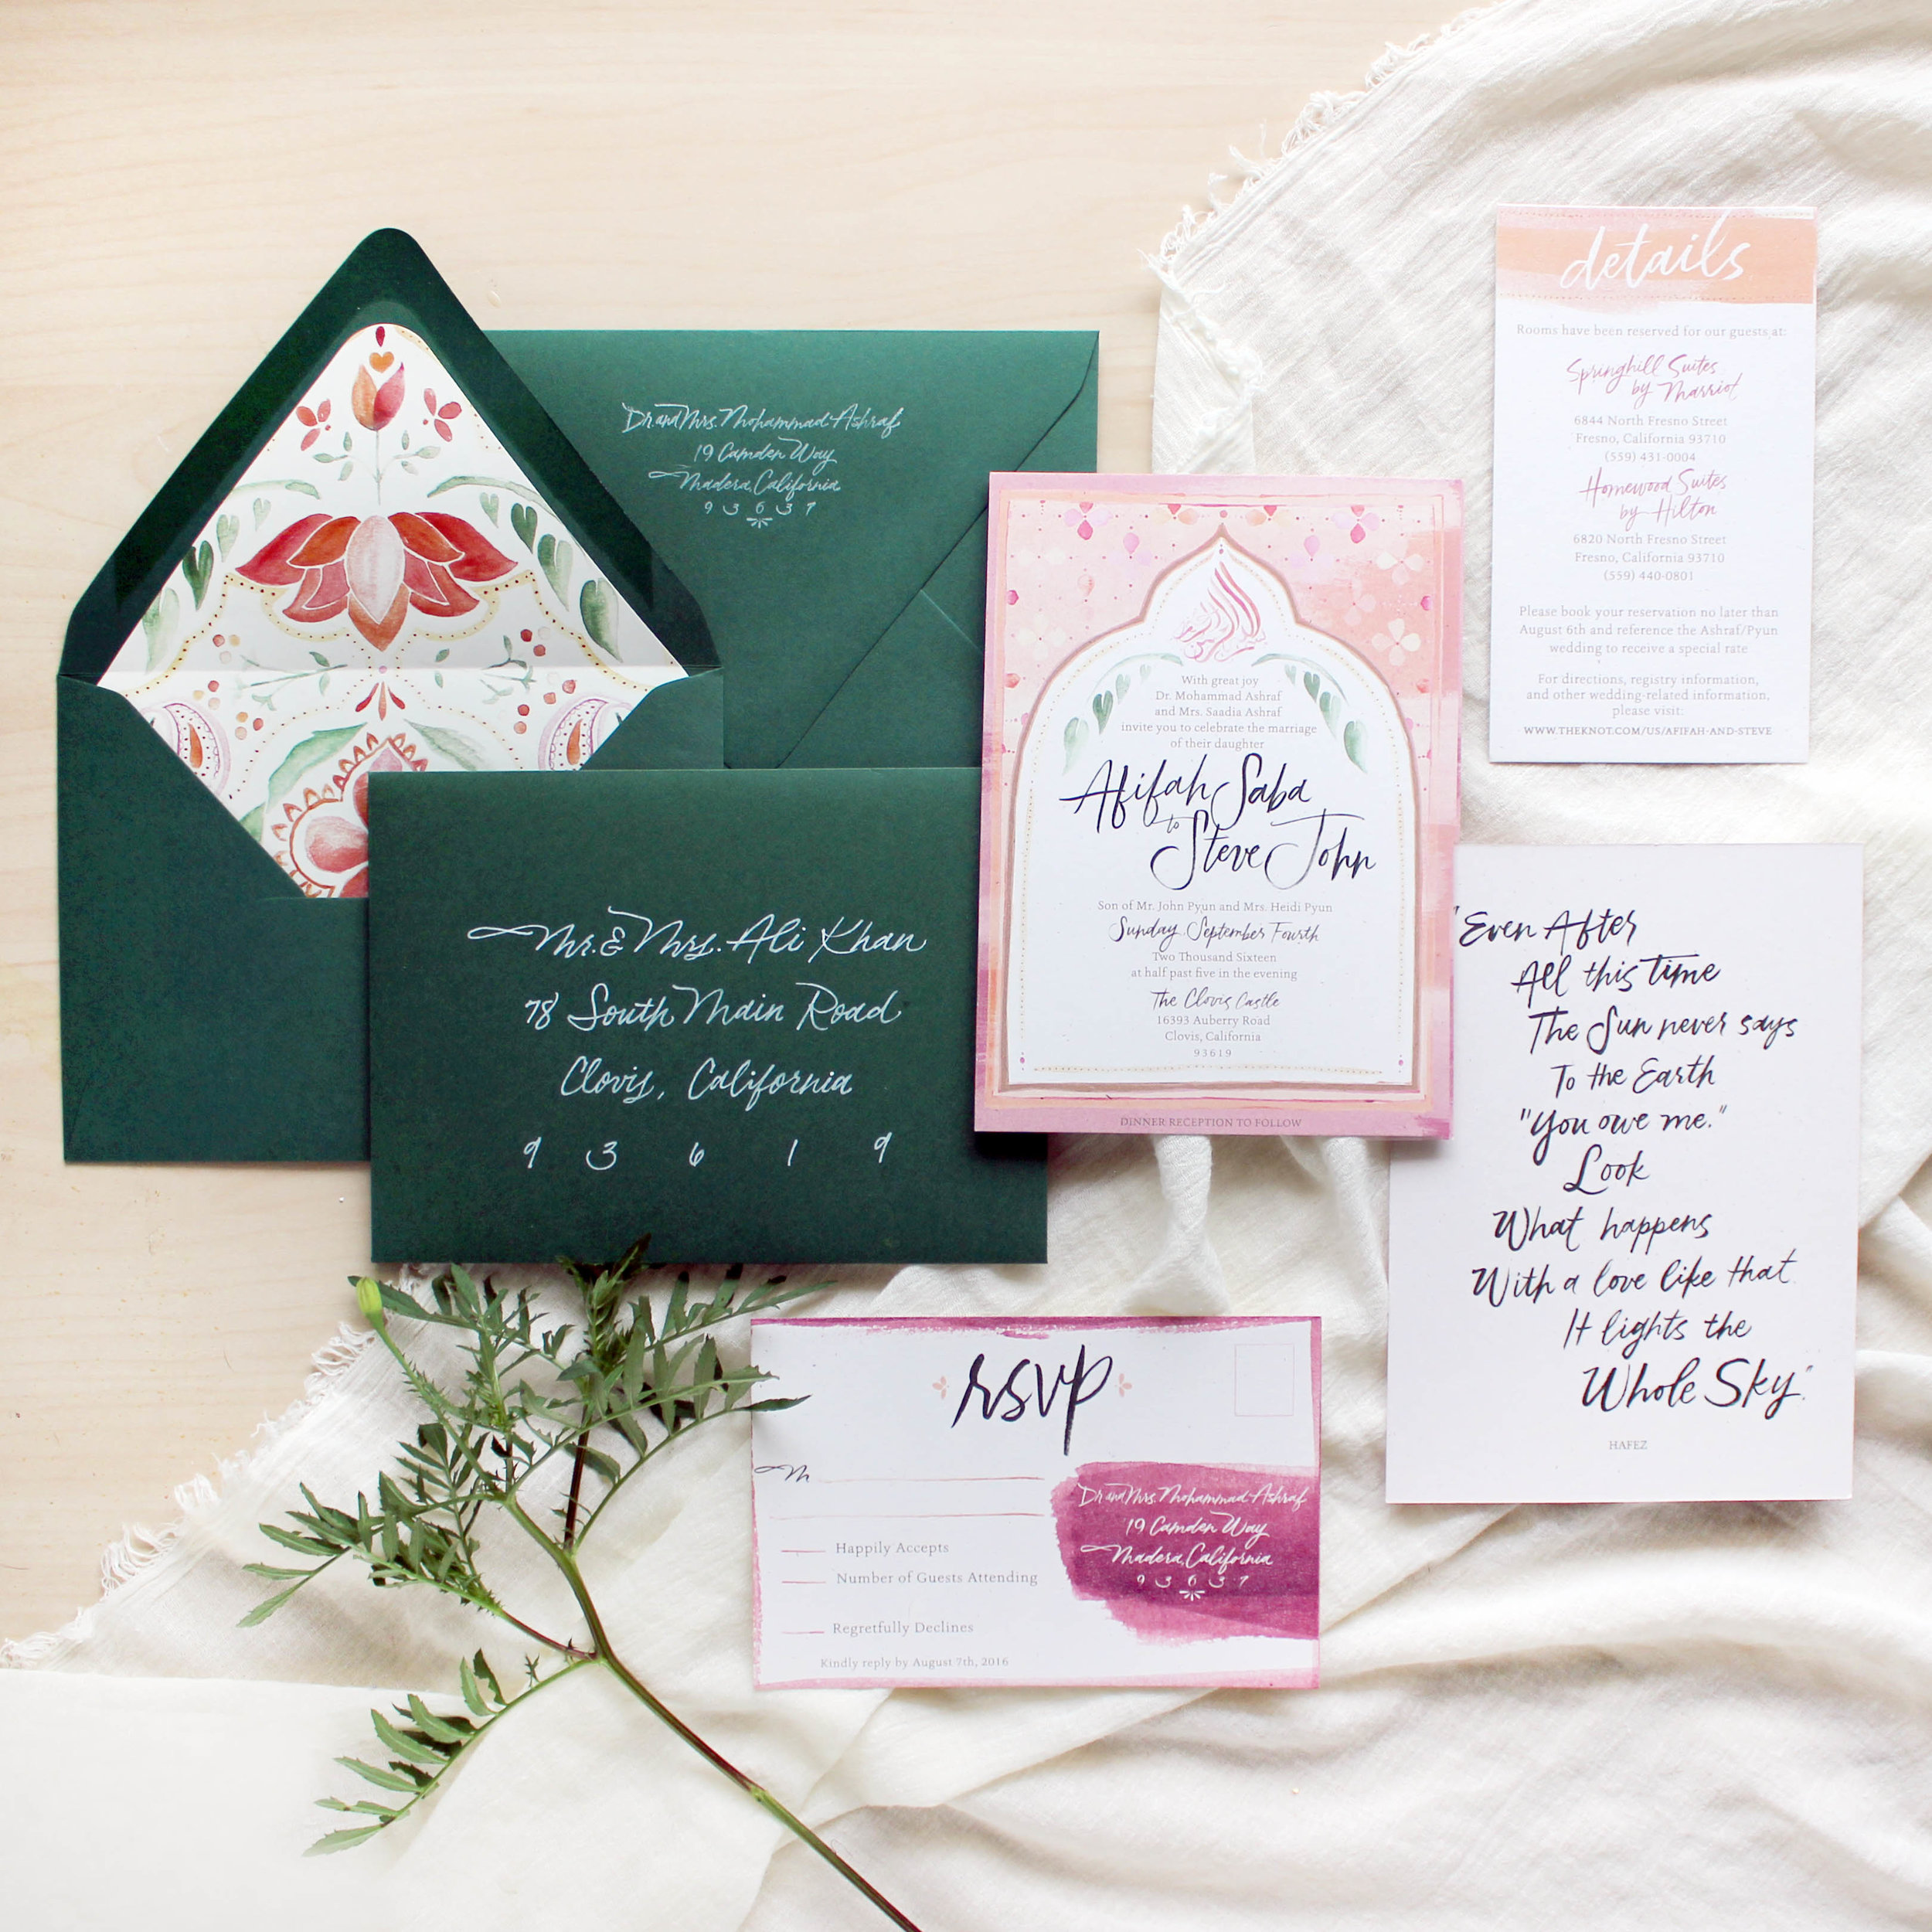 4 Tips on Choosing your Wedding Stationery: Establish your style. www.ashbush.com